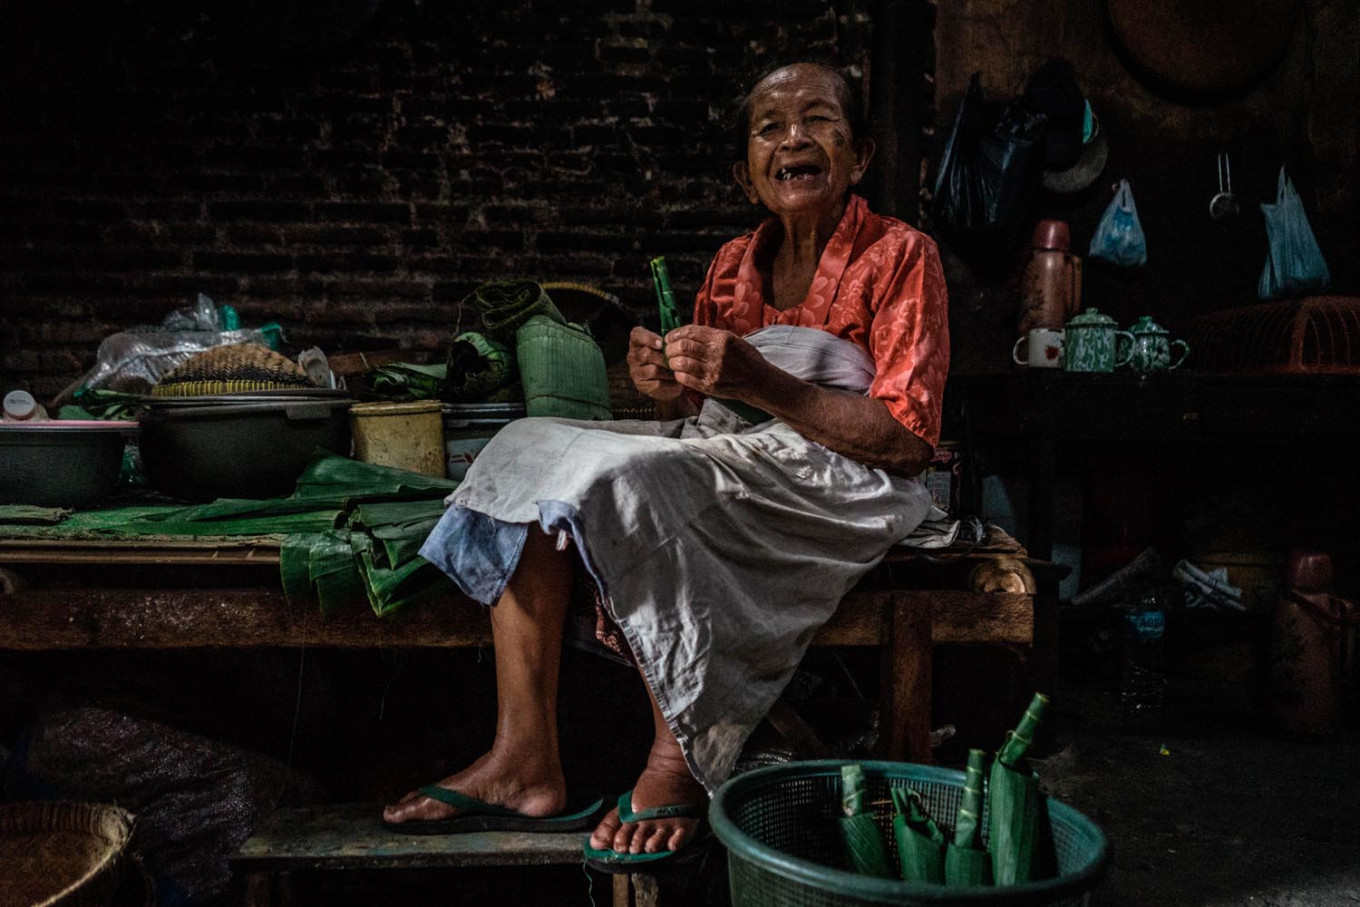 Satinem prepares to cook lupis, a traditional sweet snack. She forms a tube from a banana leaf, which will later be filled with glutinous rice. JP/Anggertimur Lanang Tinarbuko